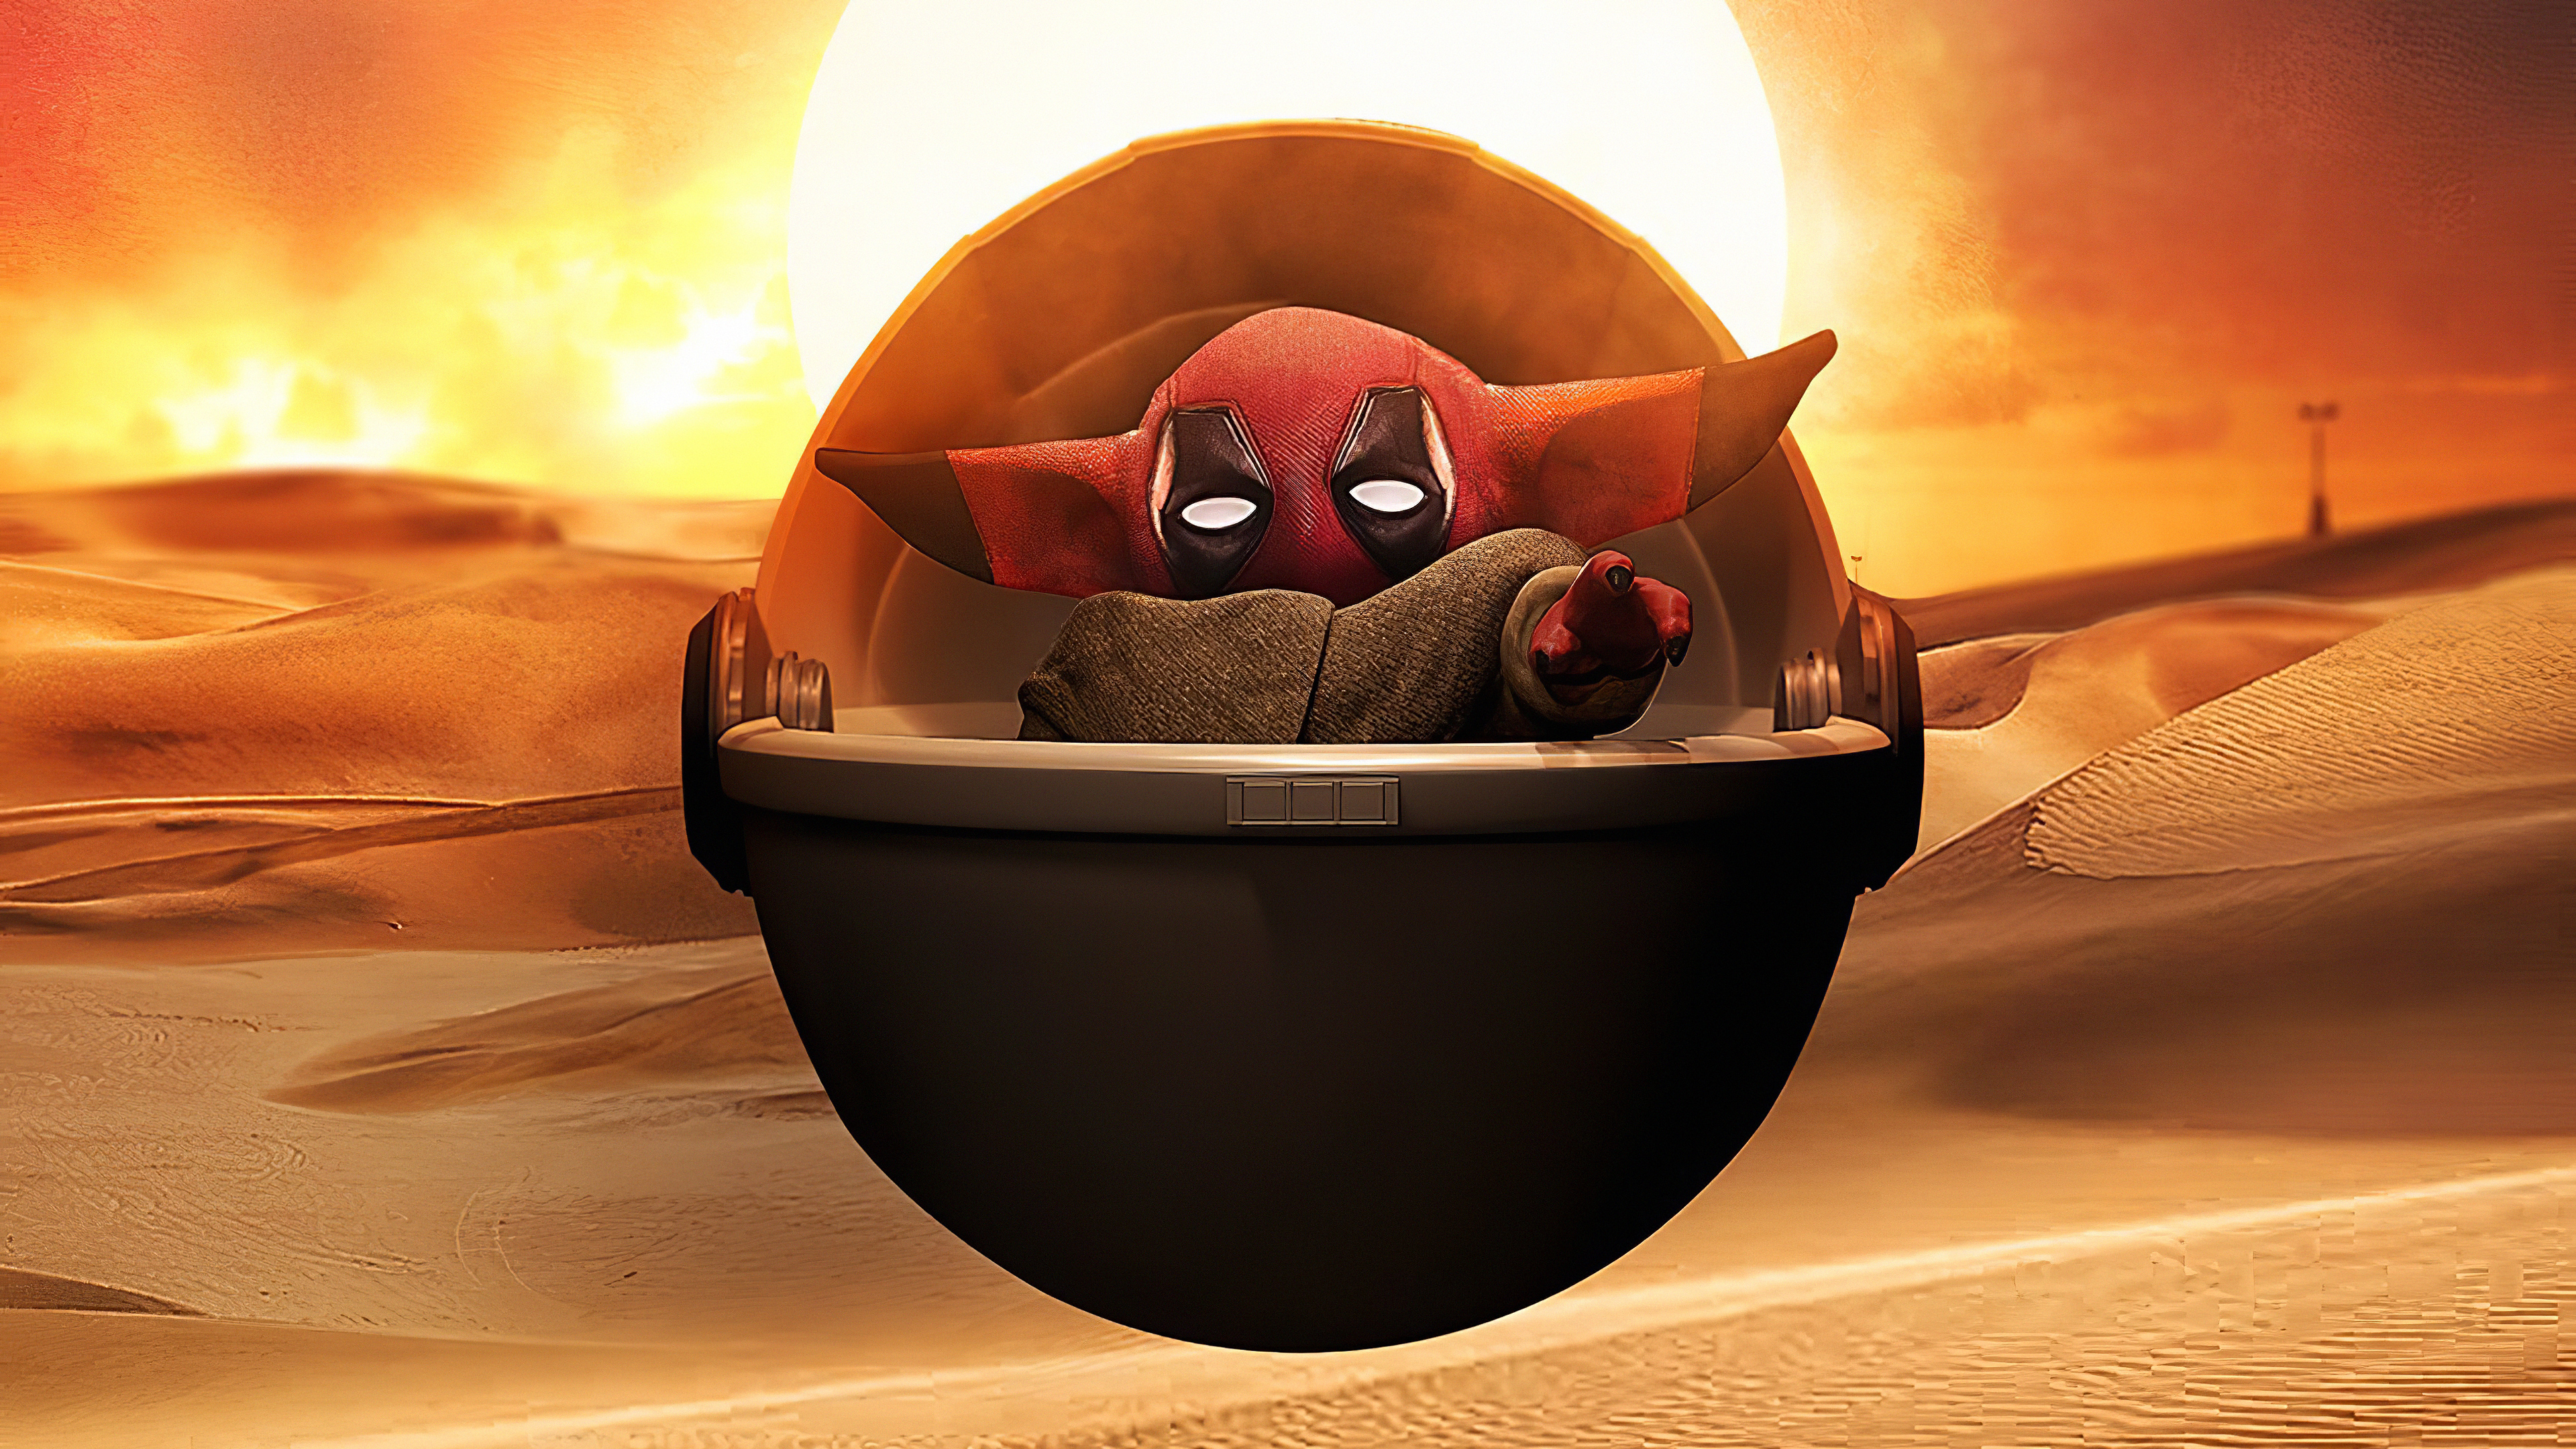 Deadpool Baby Yoda Hd Tv Shows 4k Wallpapers Images Backgrounds Photos And Pictures